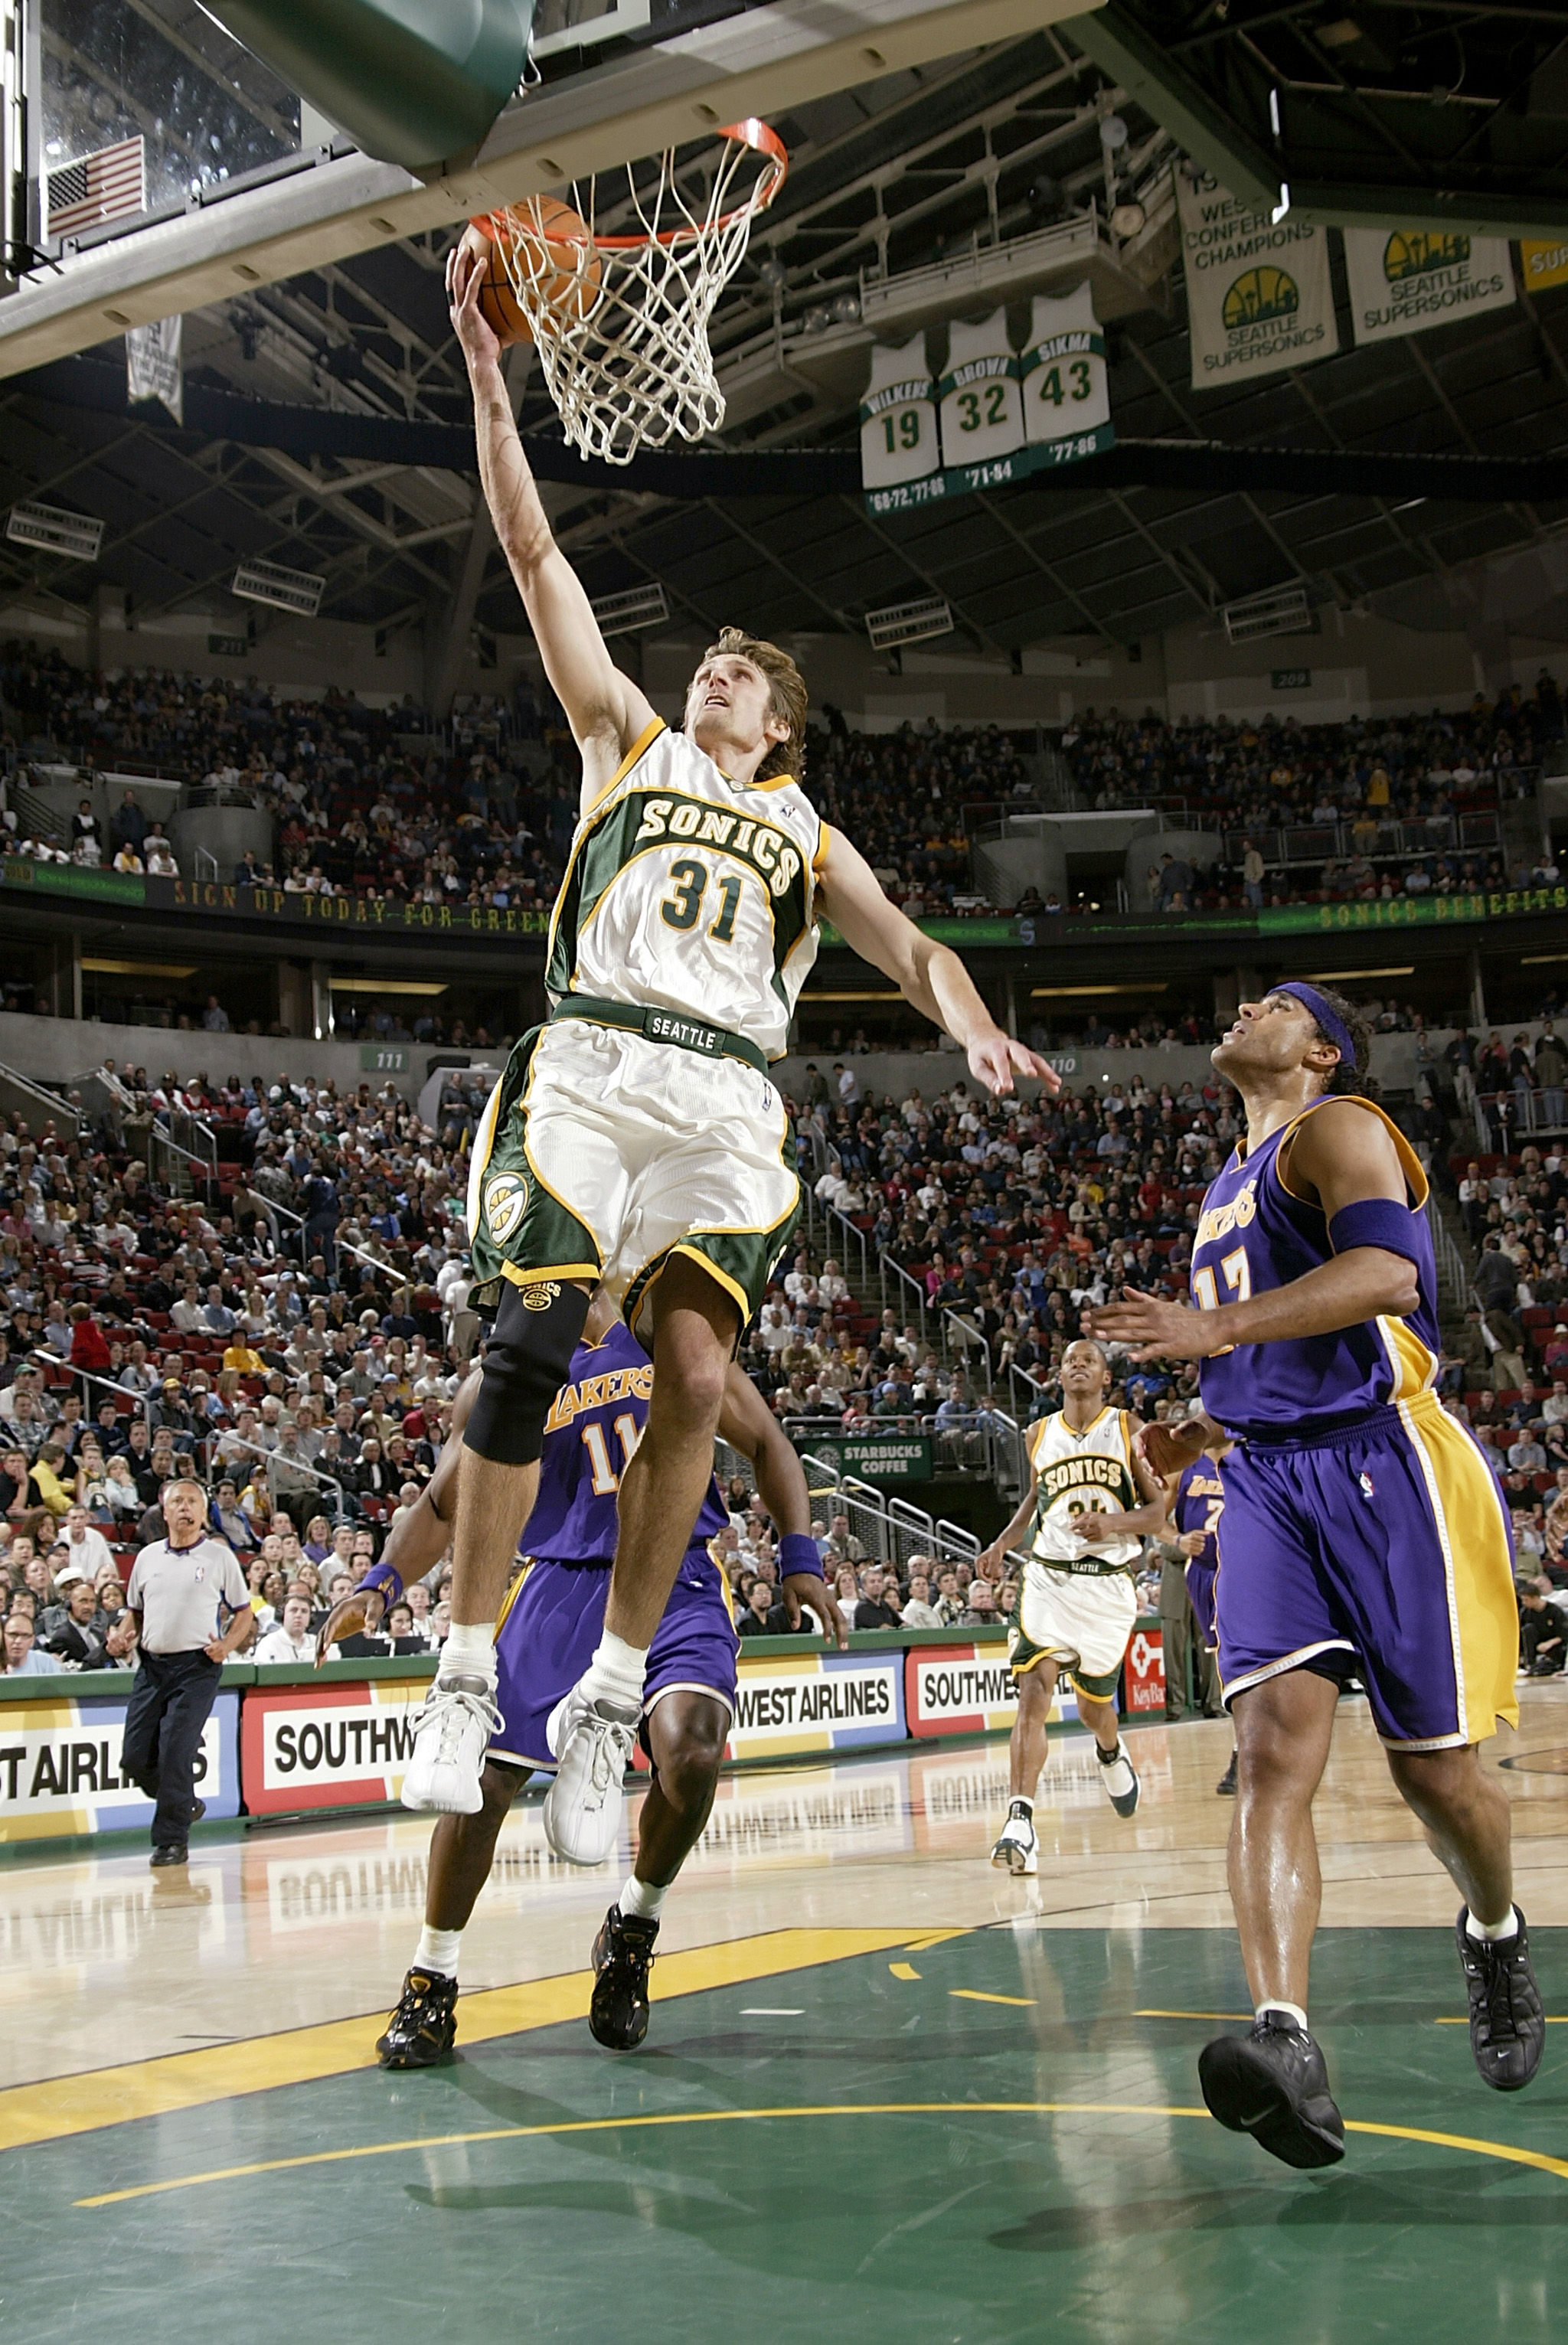 SEATTLE - APRIL 2:  Brent Barry #31 of the Seattle Sonics dunks the ball next to Rick Fox #17 of the Los Angeles Lakers during the game on April 2, 2004 at Key Arena in Seattle, Washington.  The Lakers won 97-86.  NOTE TO USER: User expressly acknowledges